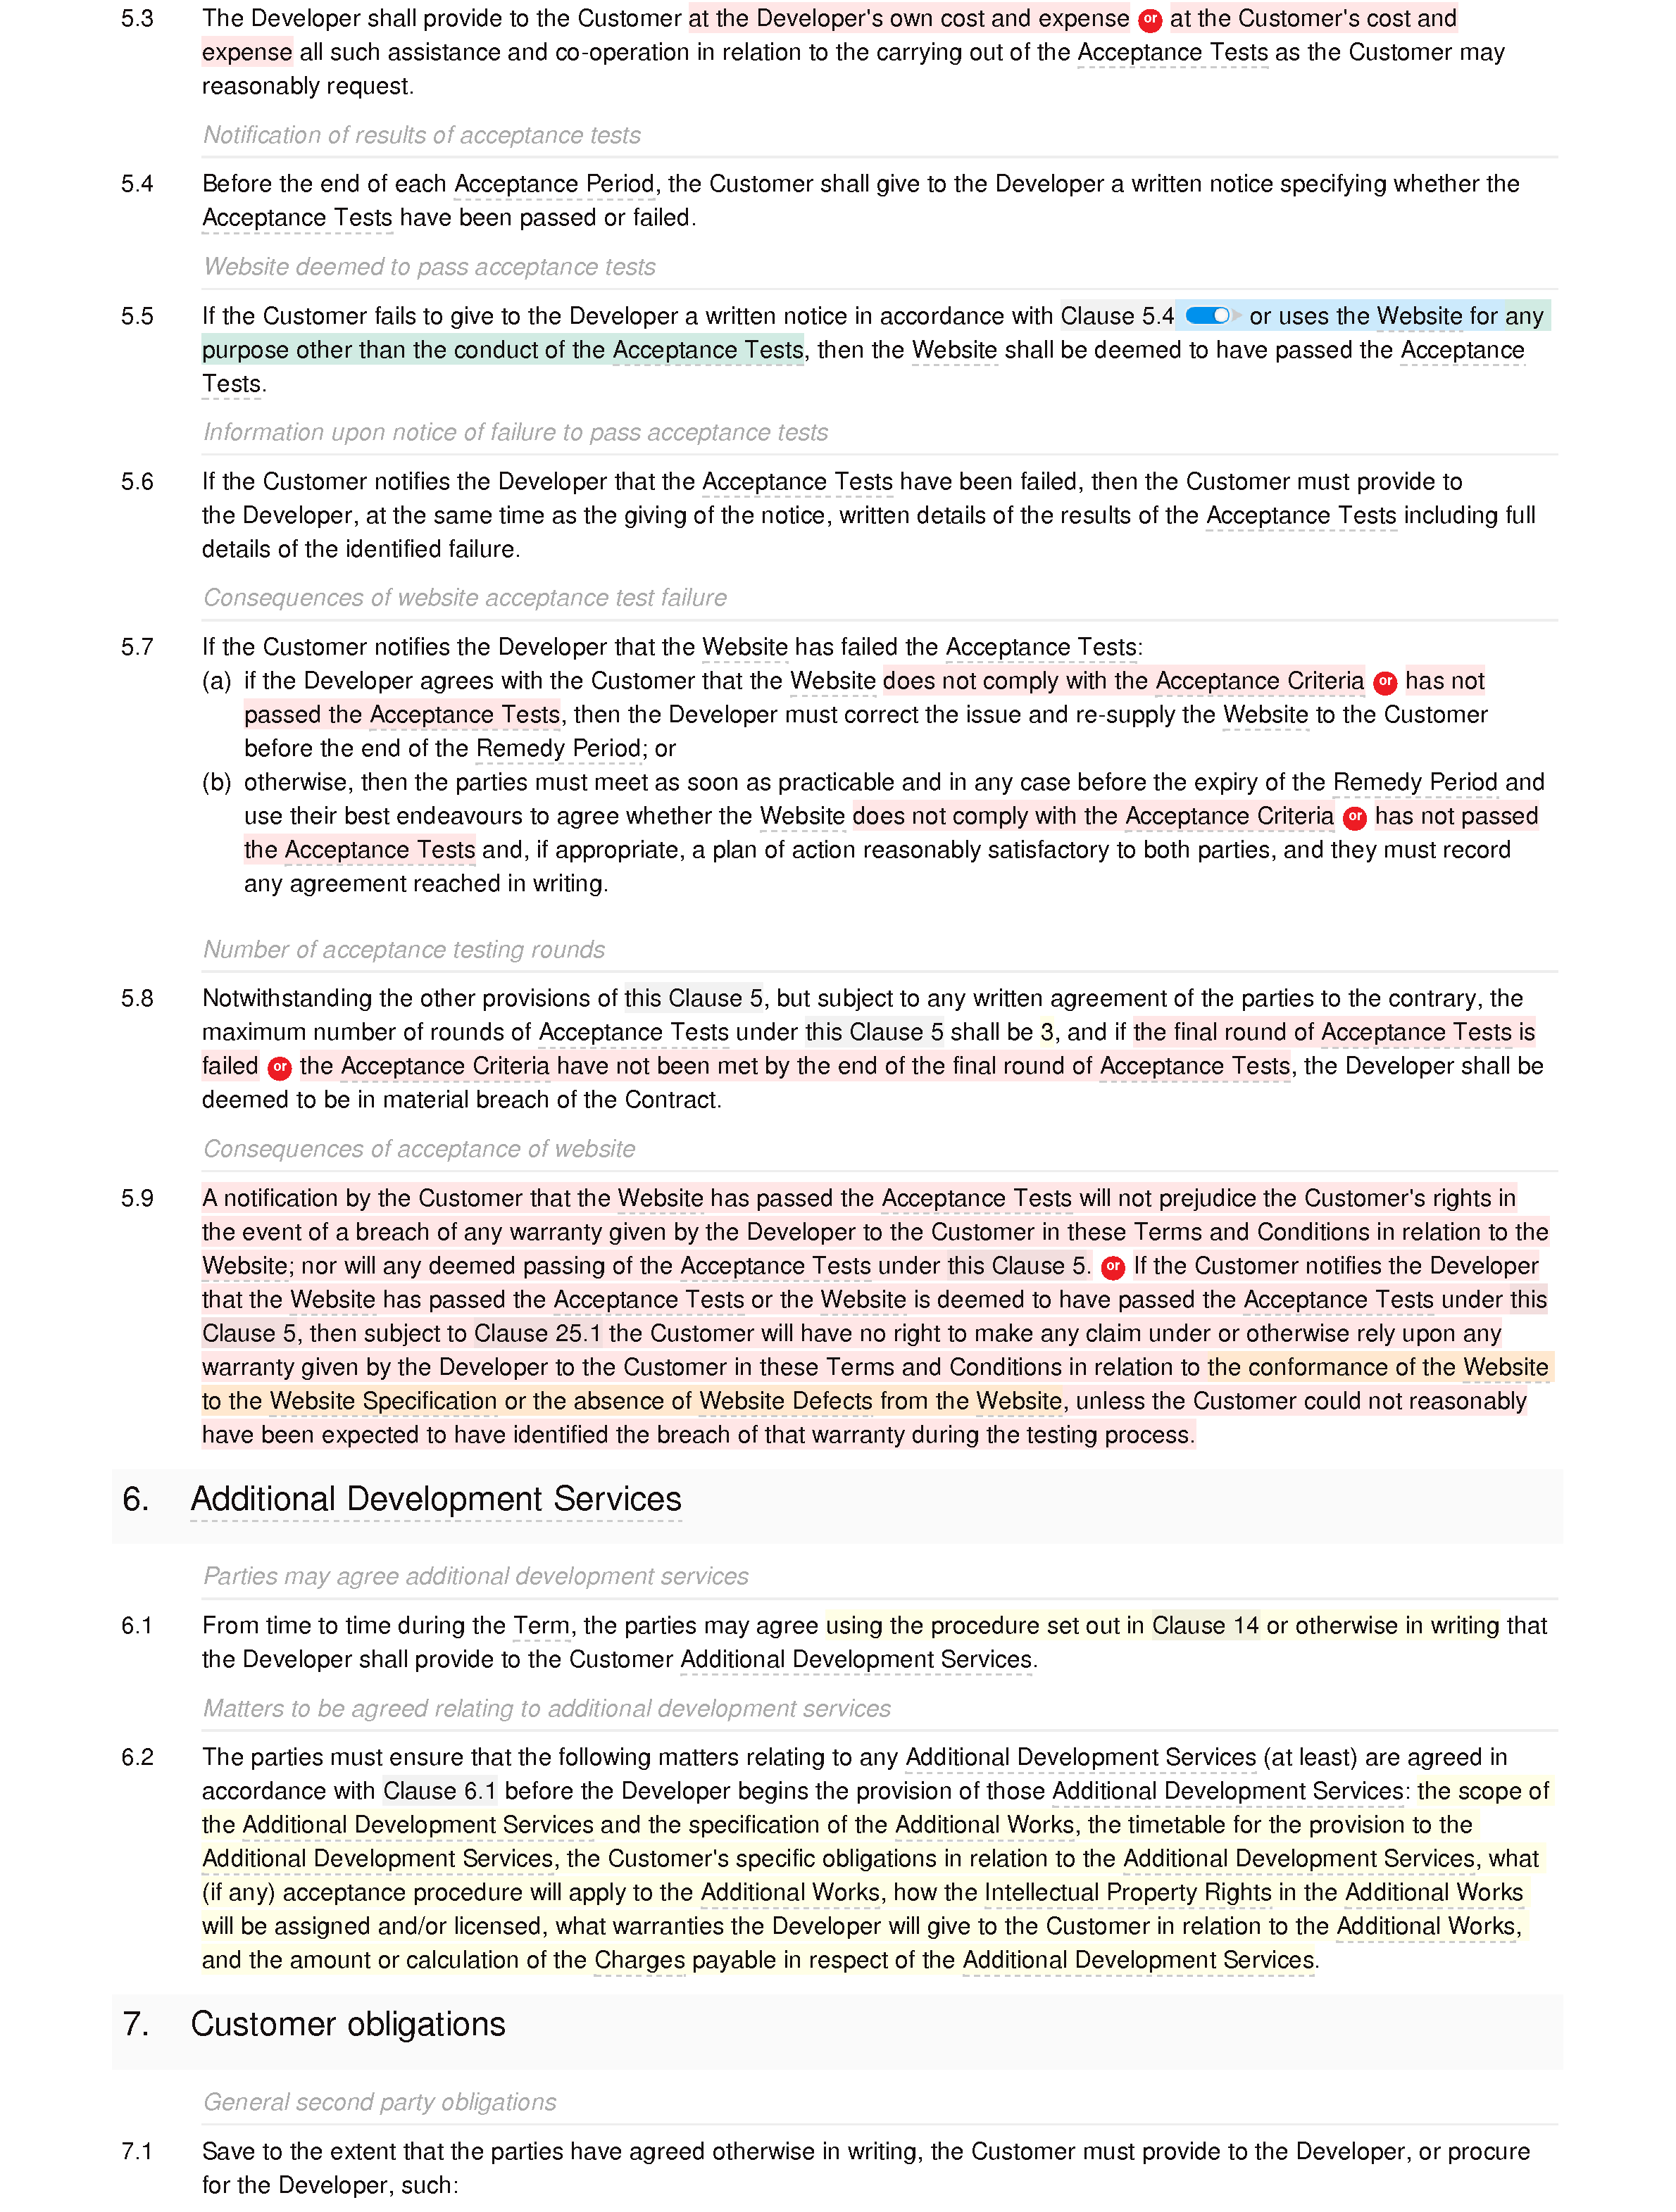 Web design and development terms and conditions (premium) document editor preview